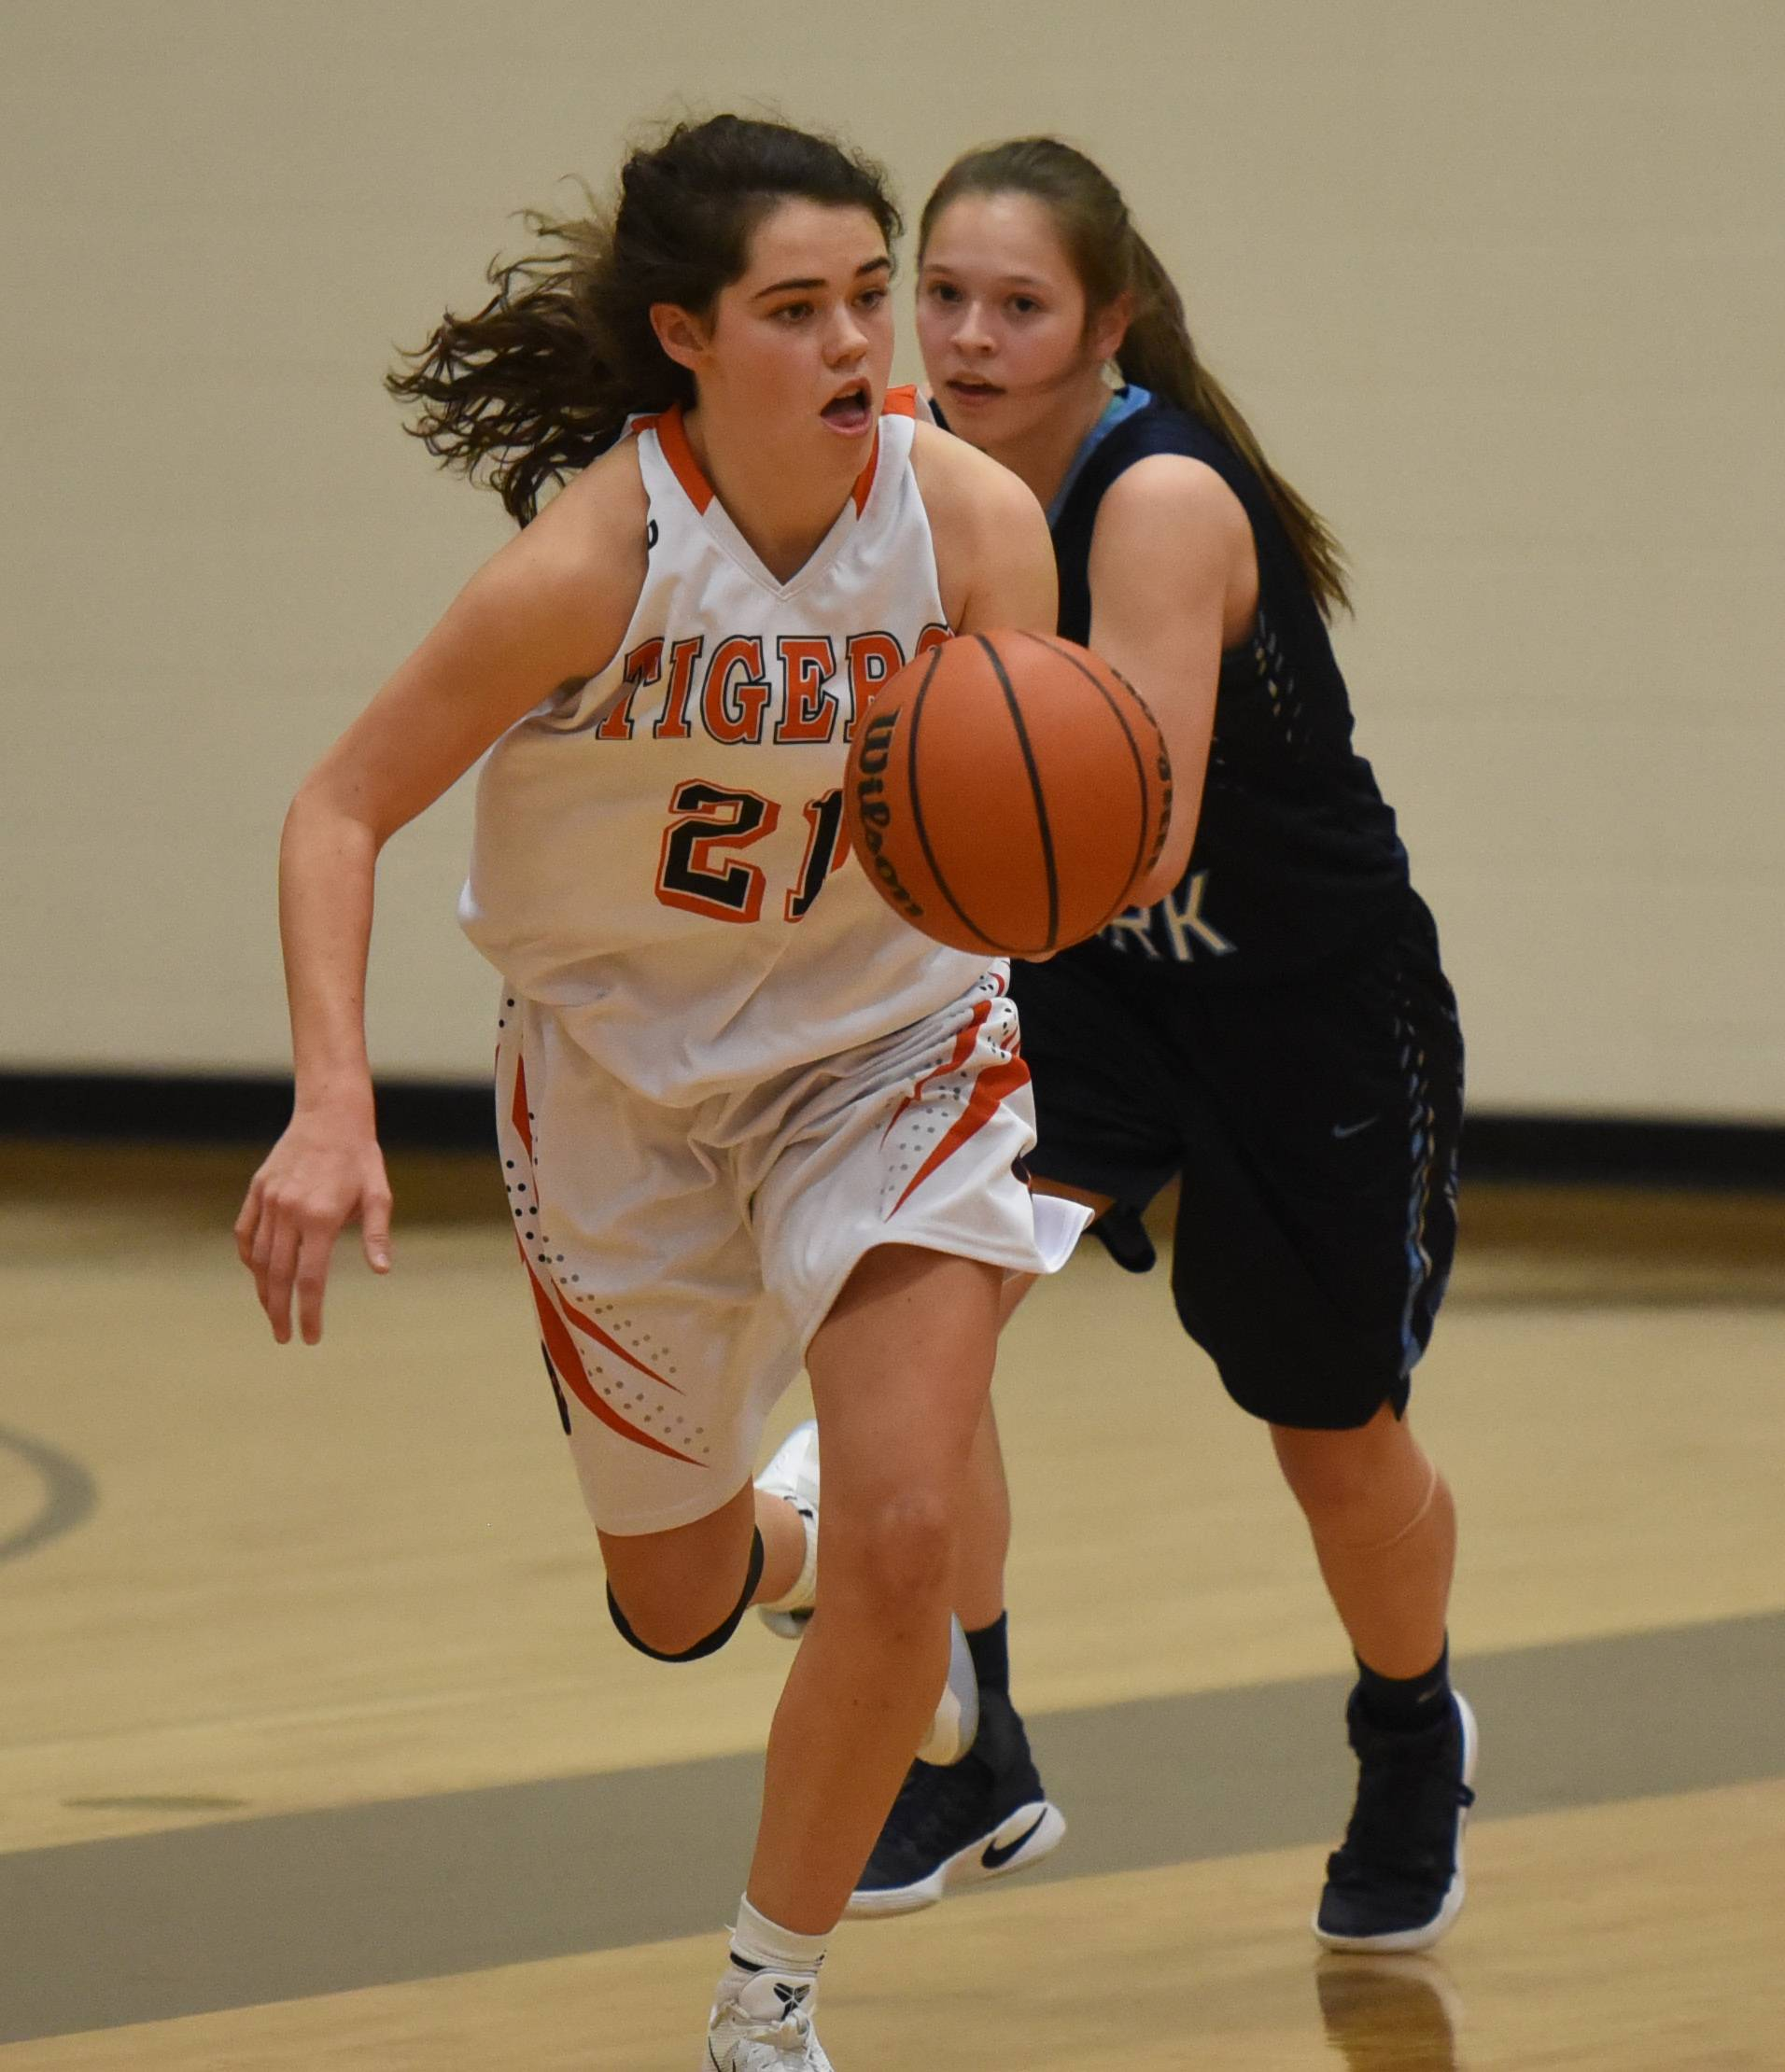 Wheaton Warrenville South's Mackenzie Stebbins drives the ball down court during the Lake Park at Wheaton Warrenville South girls basketball game Tuesday.